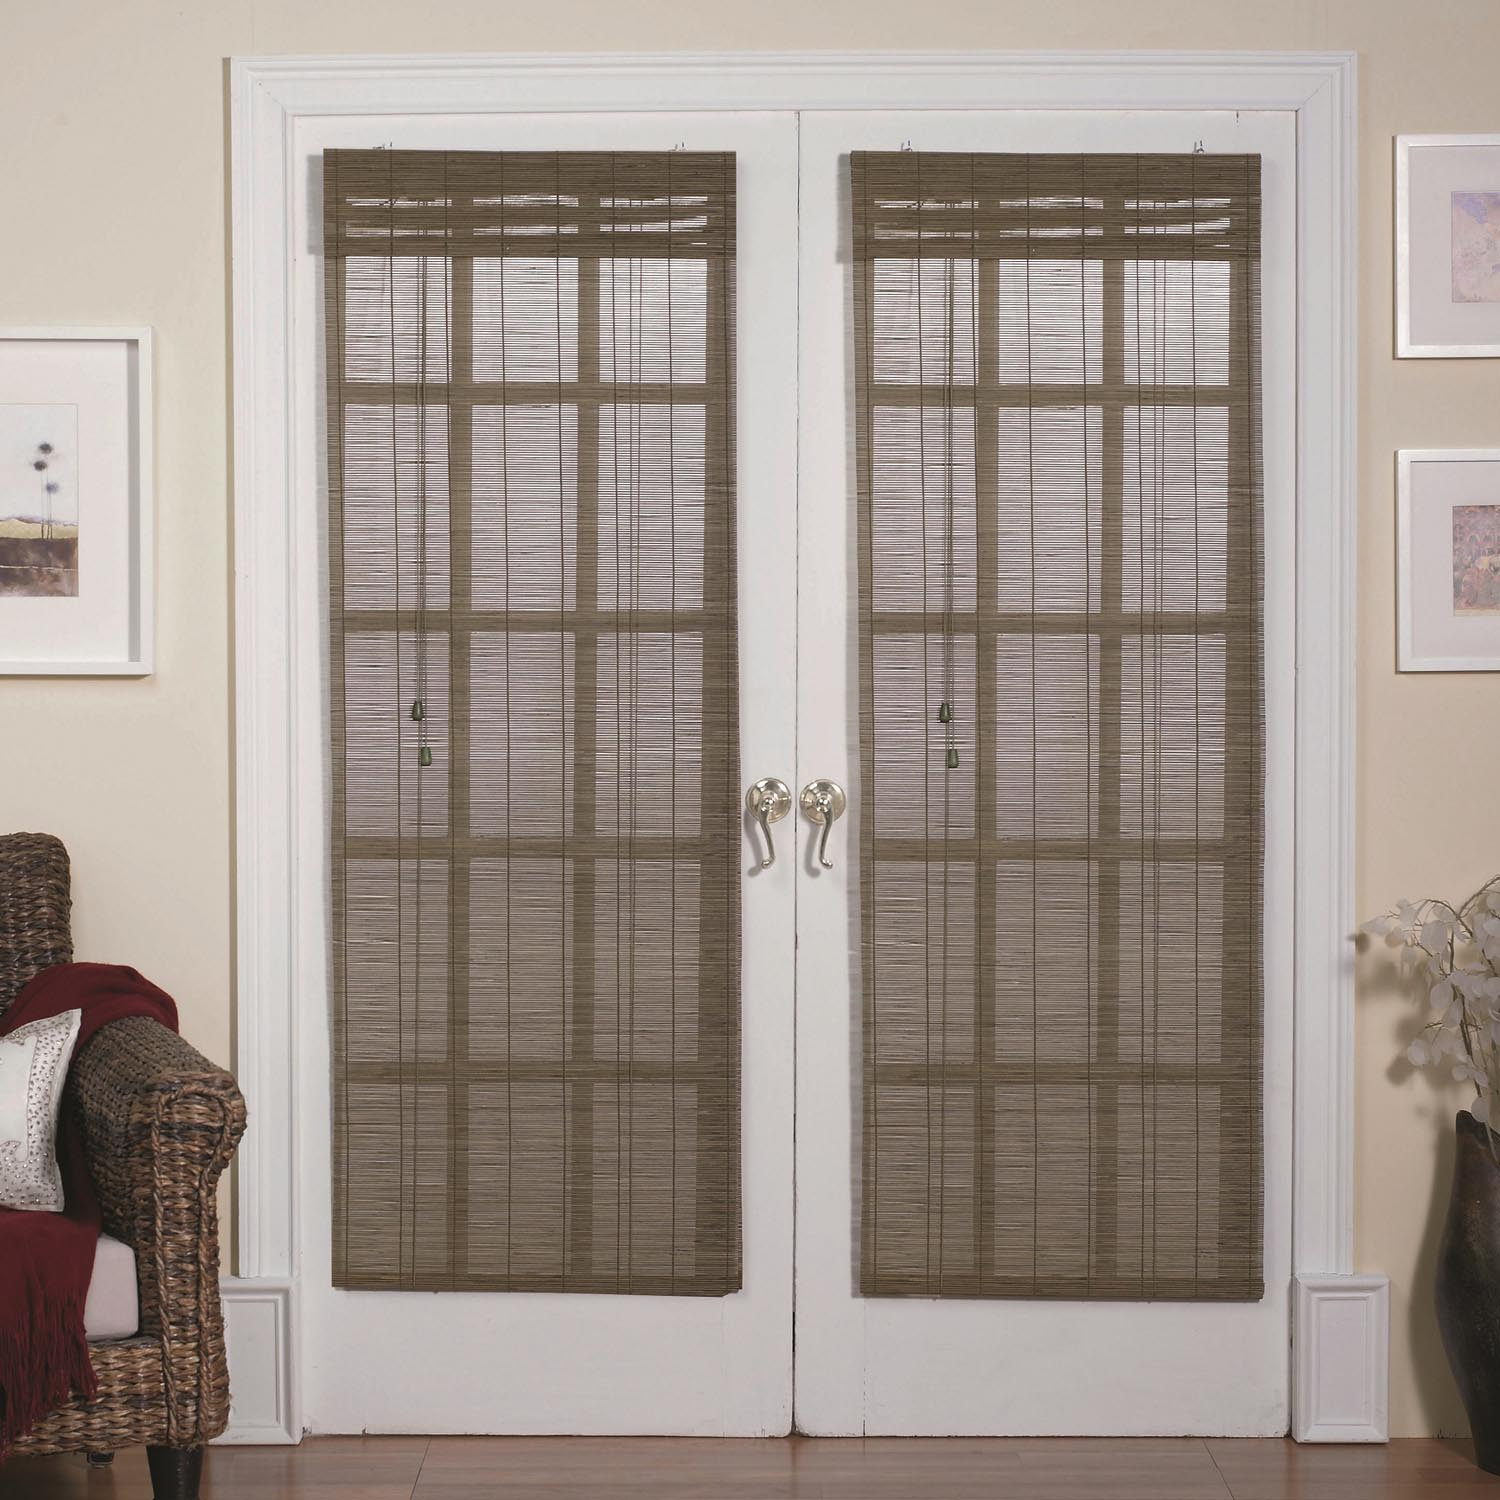 Curtains For French Doors Ideas Part - 43: Magnetic Roman Shades For French Doors